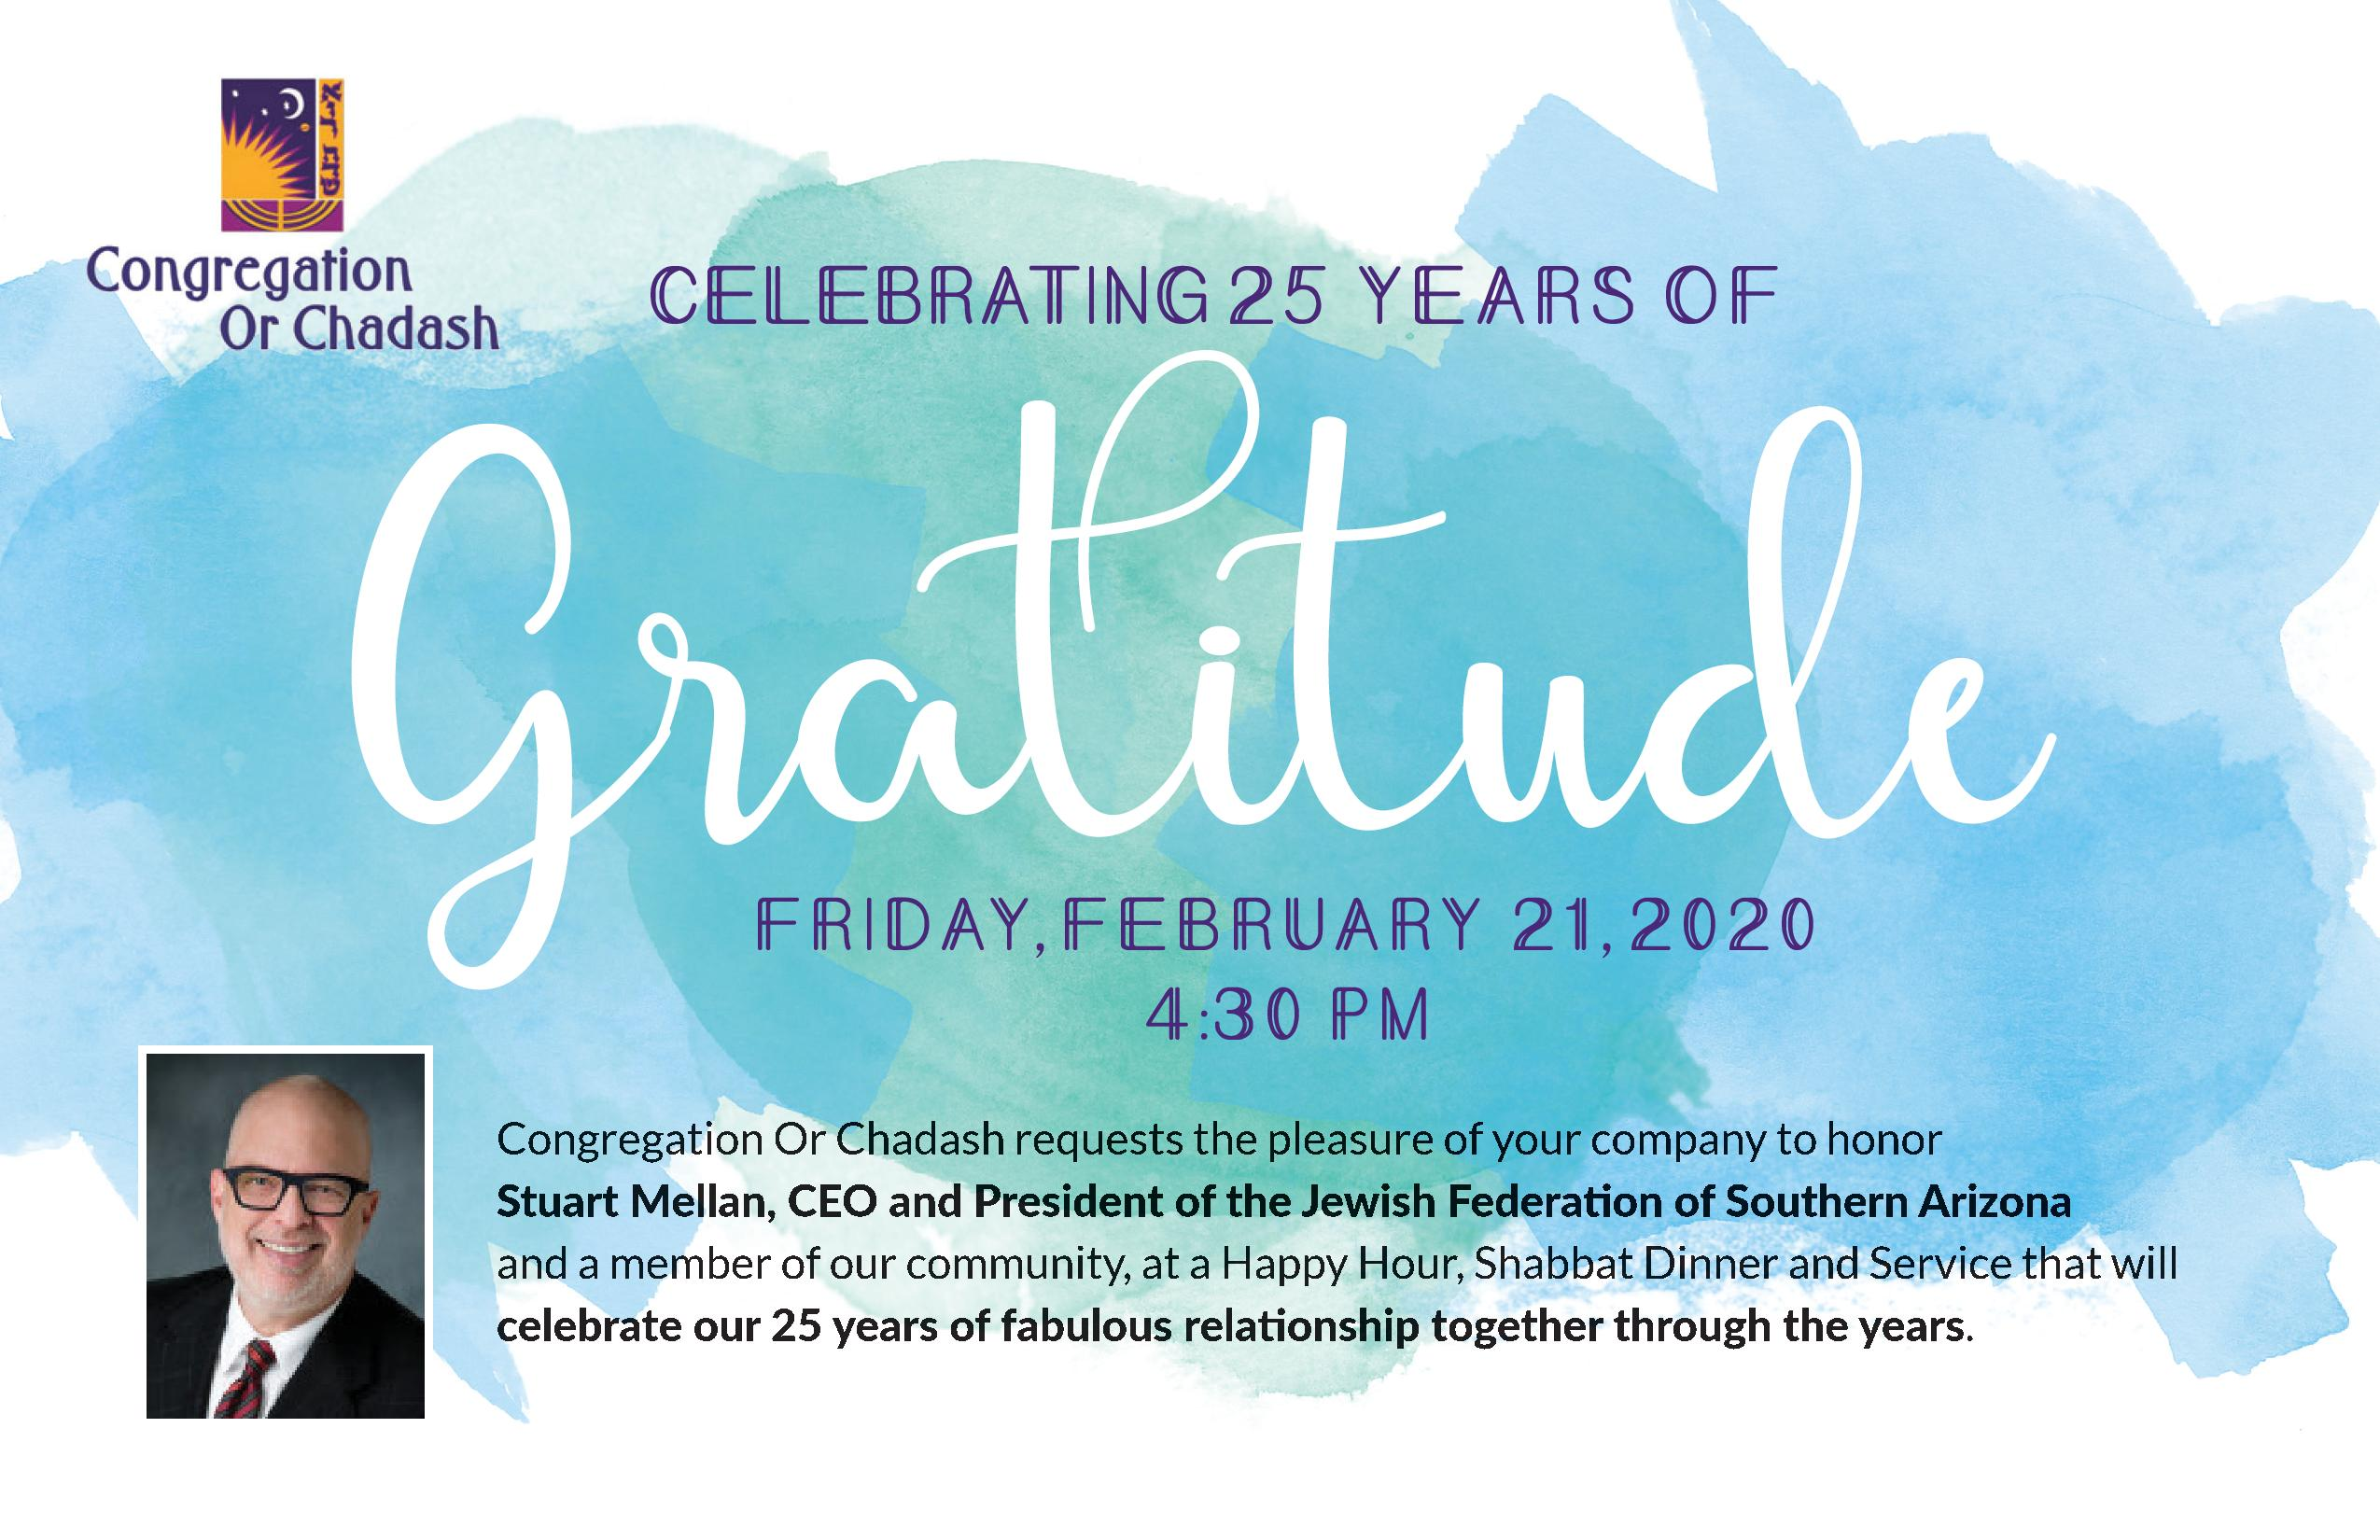 CELEBRATING 25 YEARS OF GRATITUDE: Friday, February 21, 2020 at 4:30 p.m. Congregation Or Chadash requests the pleasure of your company to honor Stuart Mellan, CEO and president of the Jewish federation of Southern Arizona and a member of our community, at a Happy Hour, Shabbat Dinner, and Service that will celebrate our 25 years of fabulous relationship together through the years.